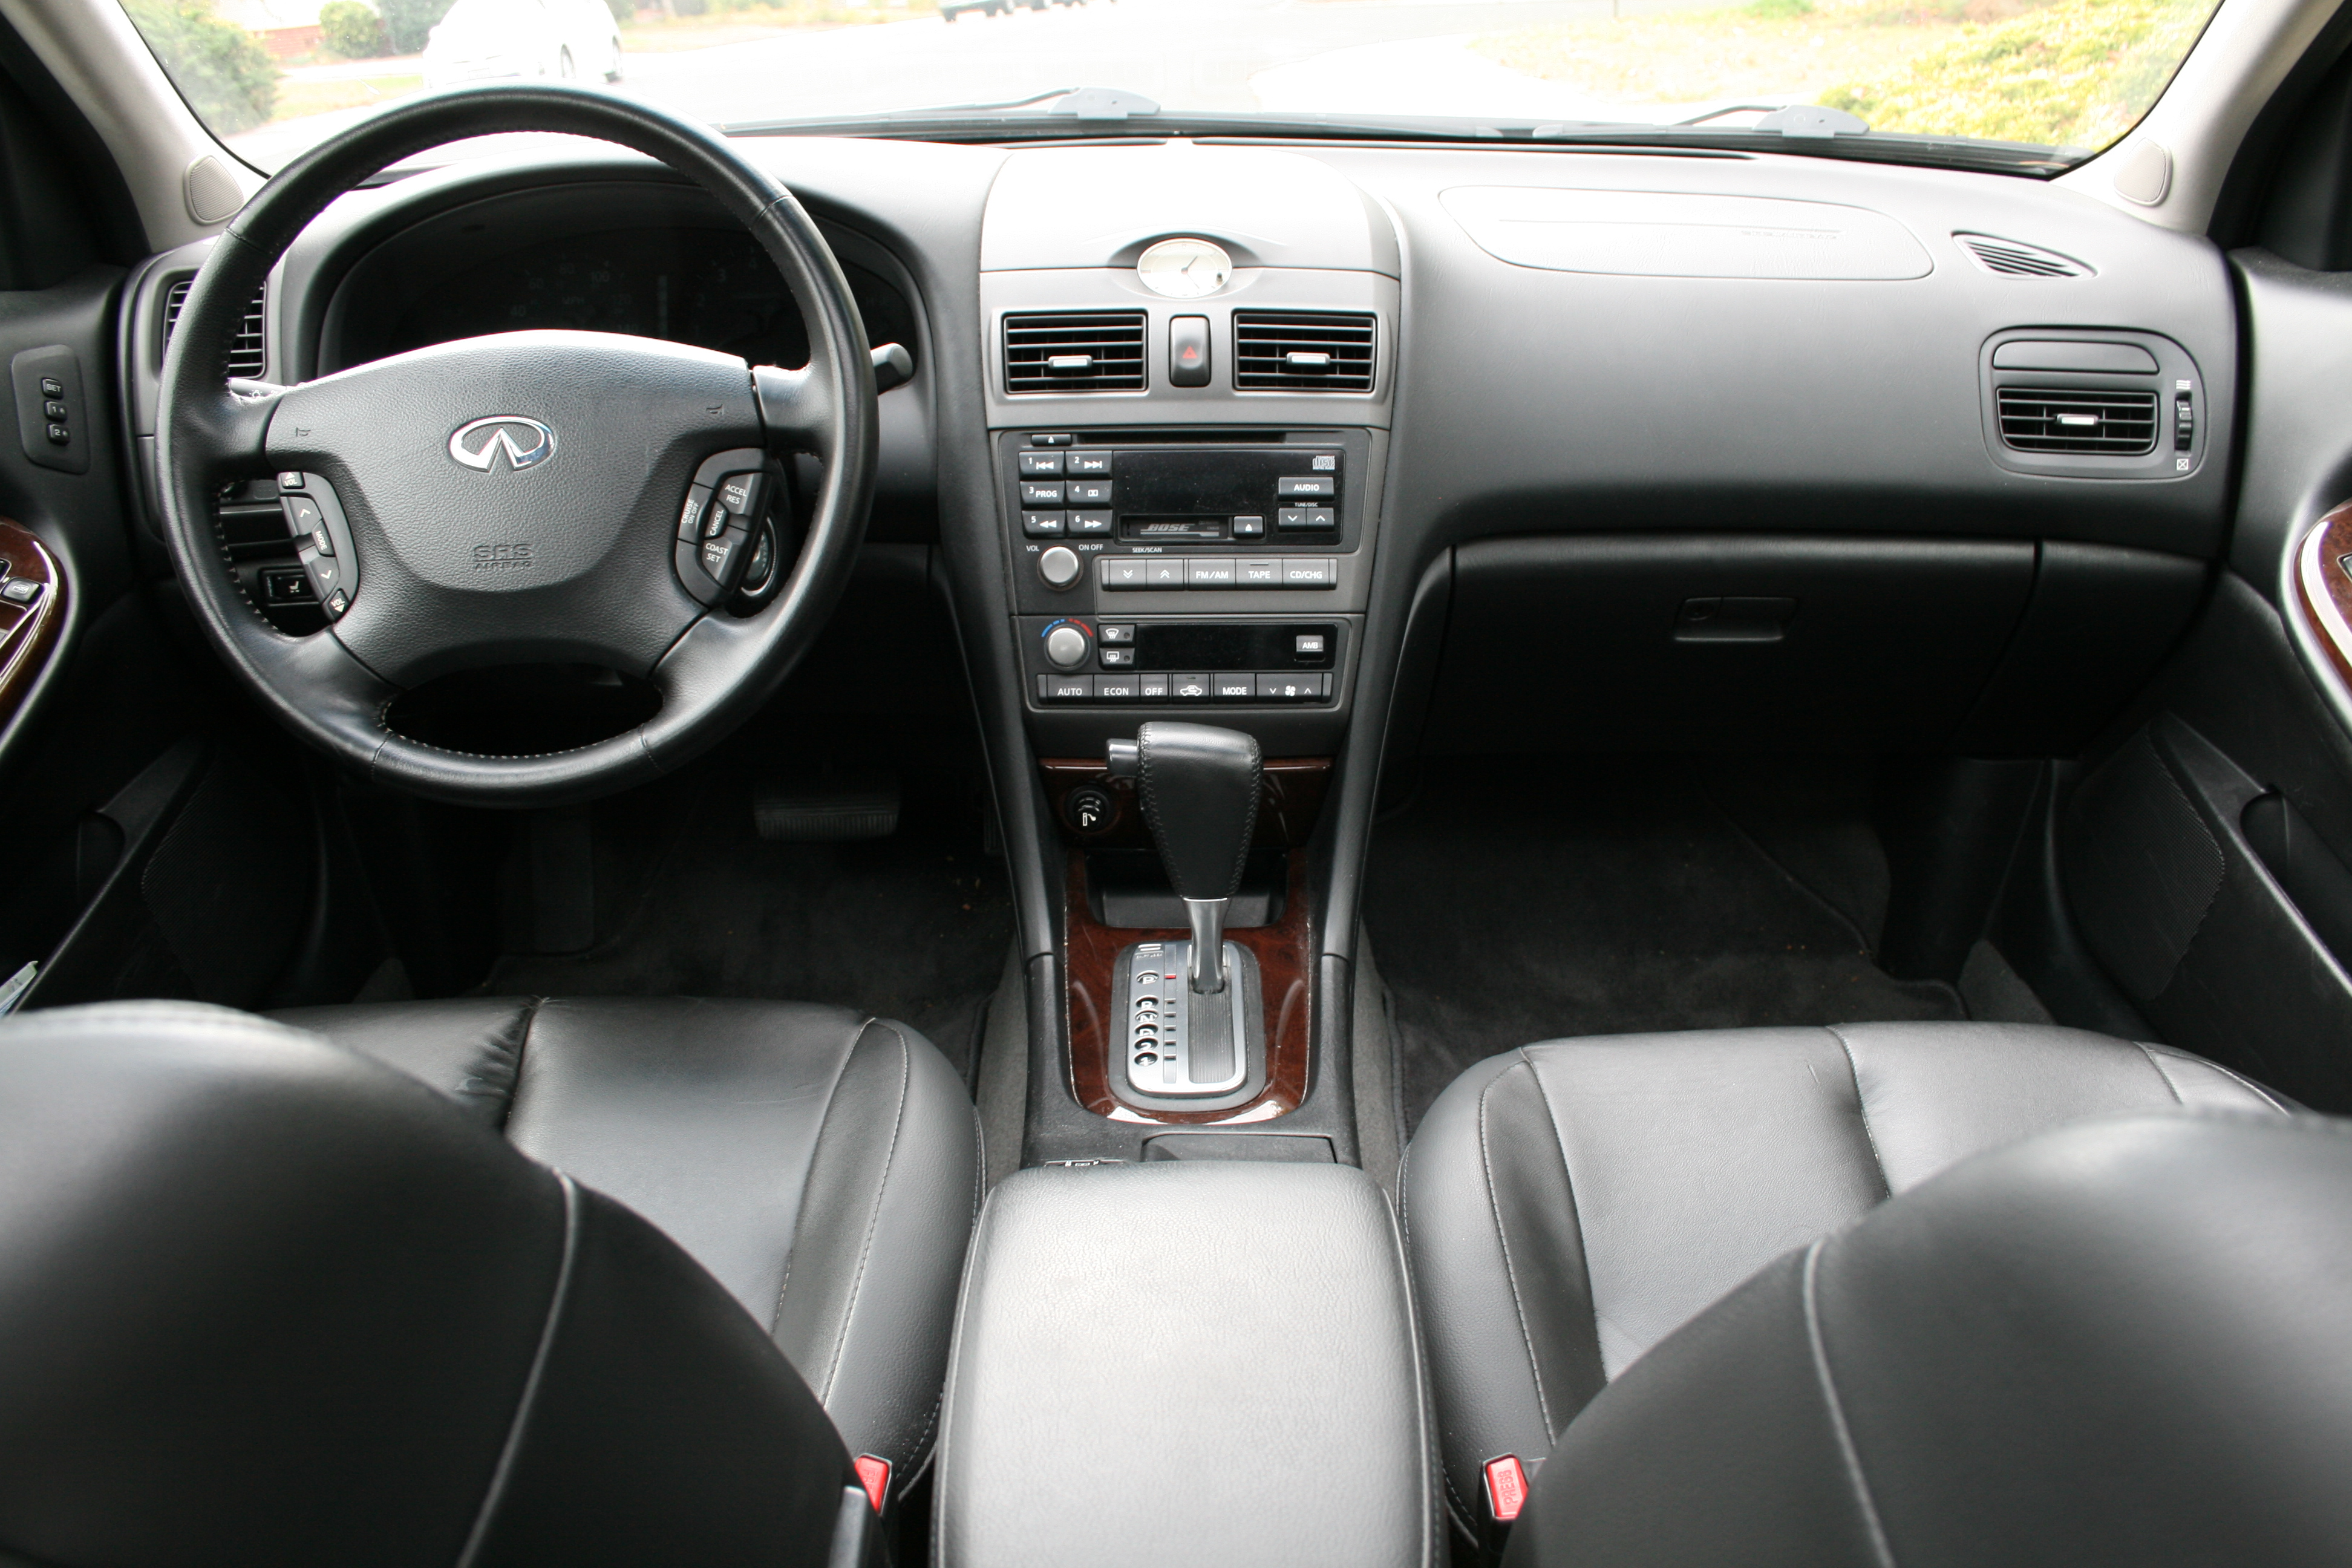 2000 infiniti q45 interior choice image hd cars wallpaper 2001 infiniti m45 interior gallery hd cars wallpaper 2001 infiniti q45 interior choice image hd cars vanachro Image collections